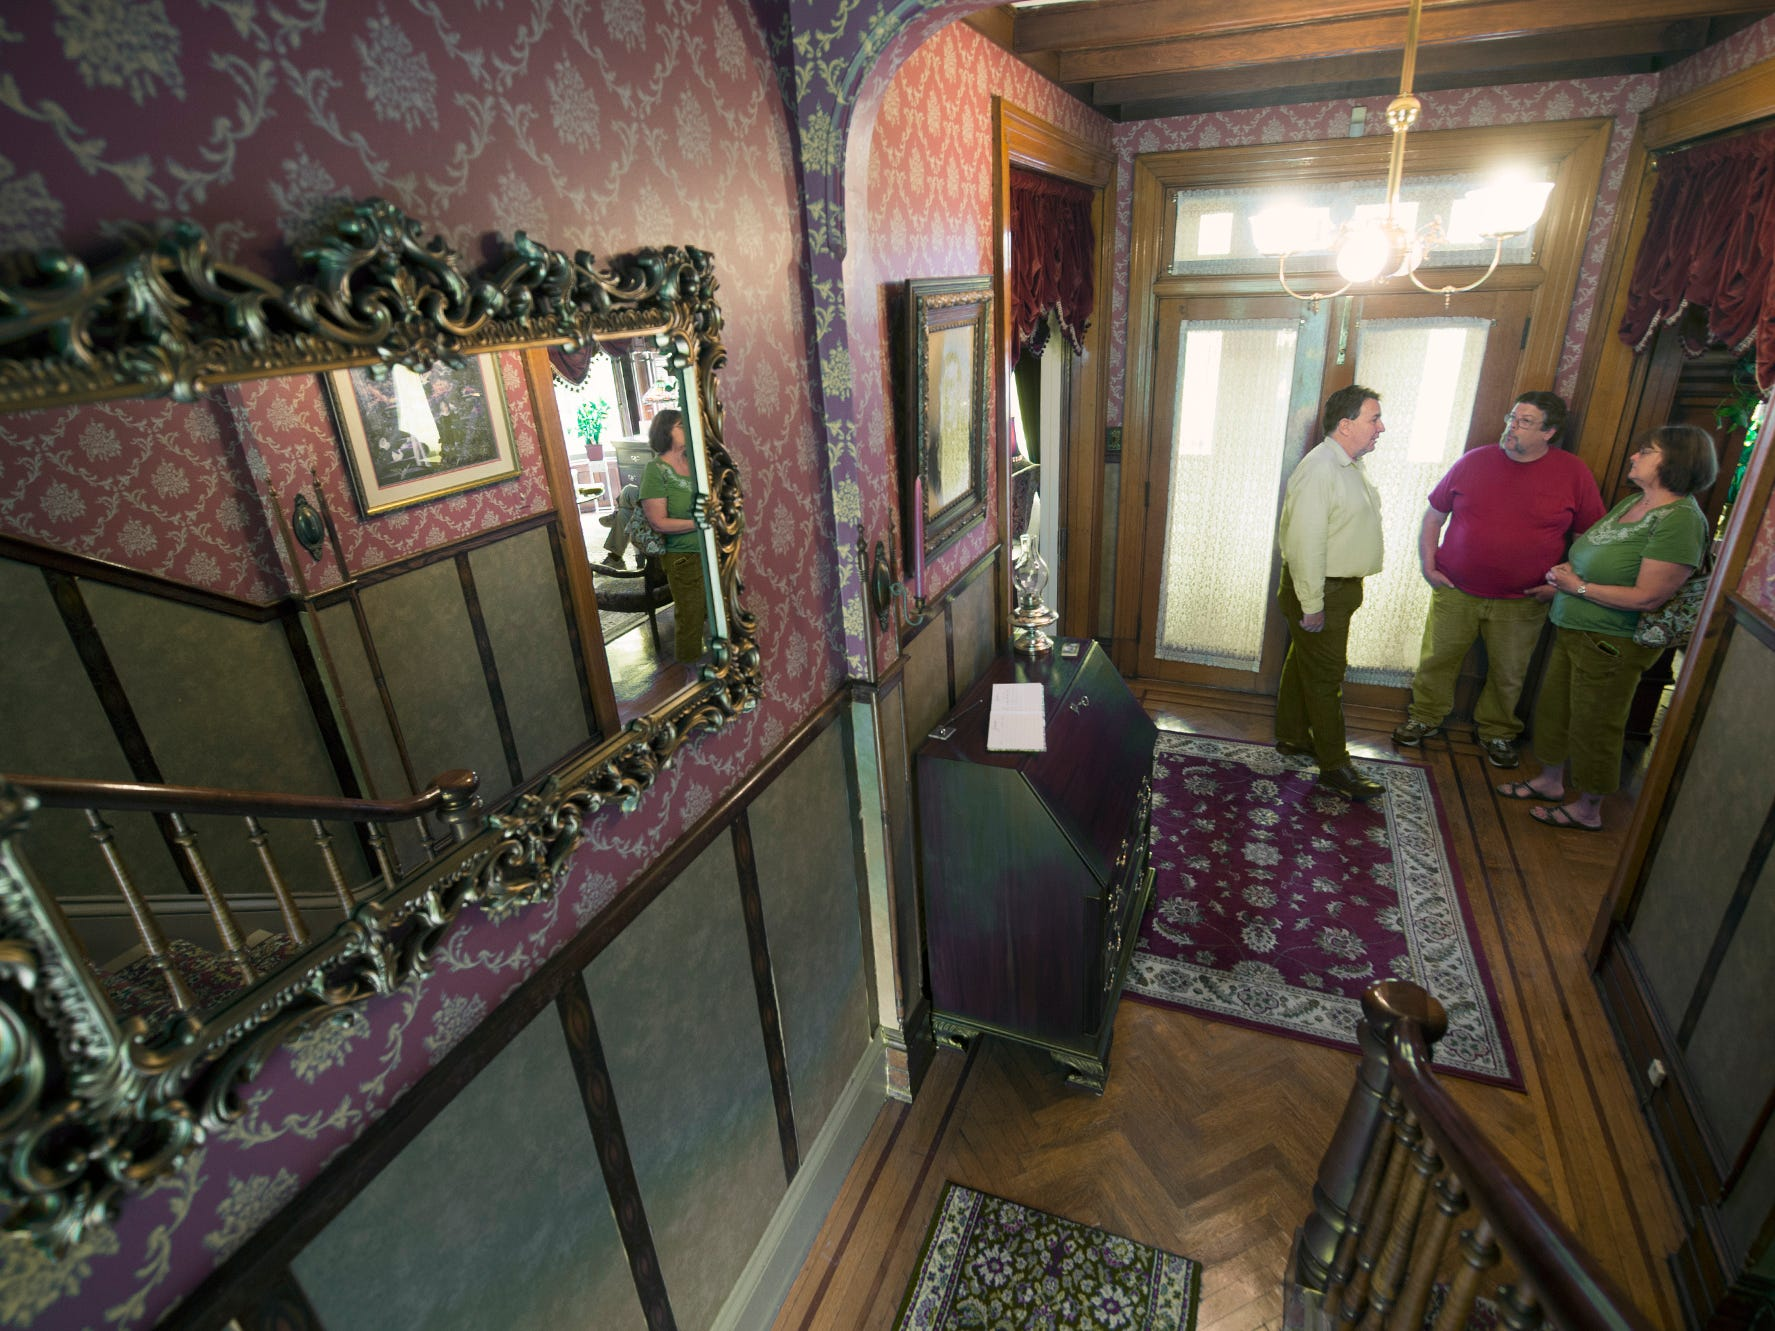 Looking at the front foyer from the main staircase of the Emig Mansion Bed & Breakfast on May 17, 2015.